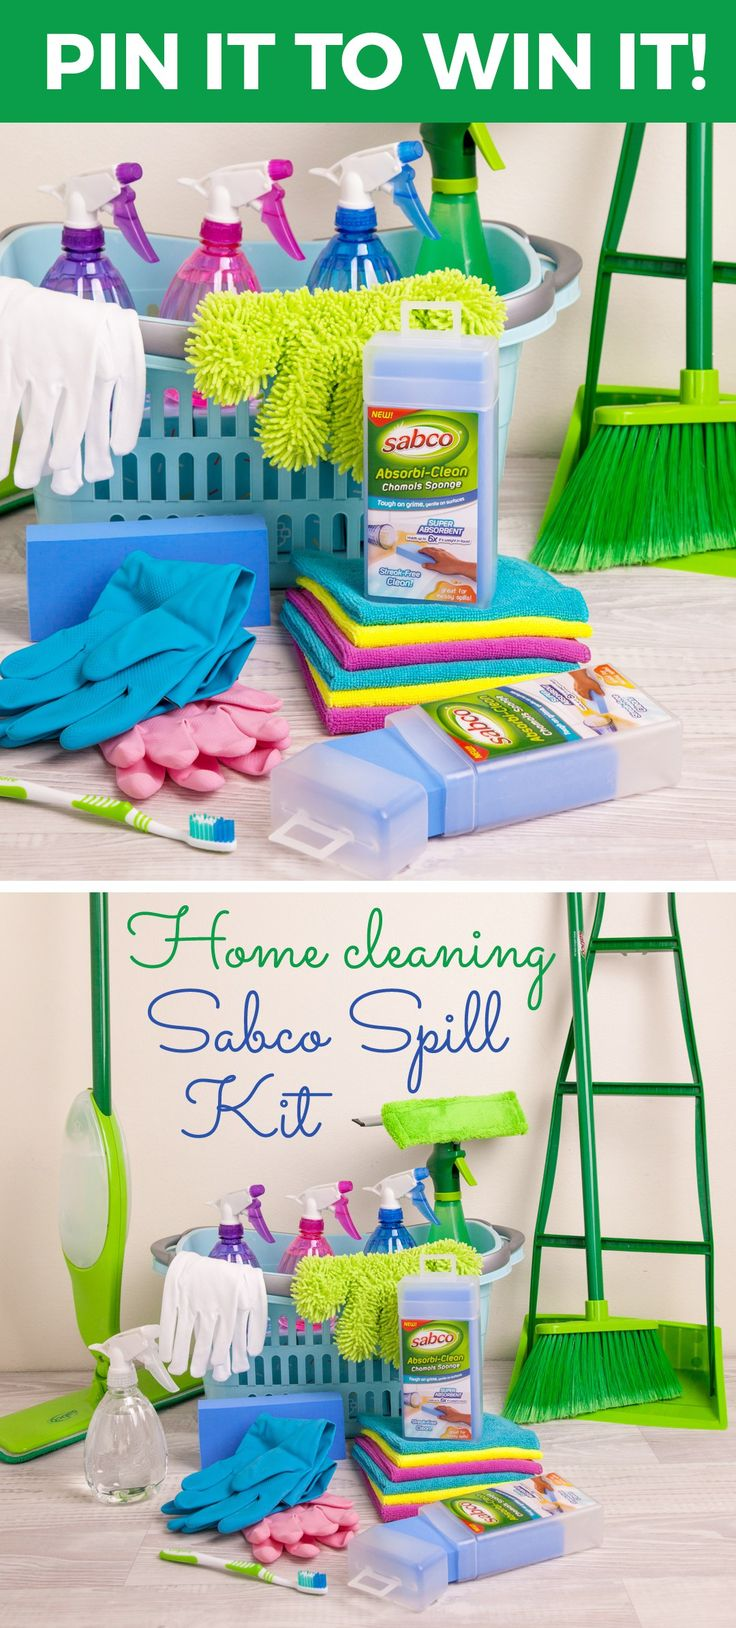 Pin it to win it! Click through for details on how to win a Sabco home cleaning kit! Organisation | Clean | Tidy | Fresh | Home| housekeeping | mum life | Aussie mums #KeepItClean #Sabco